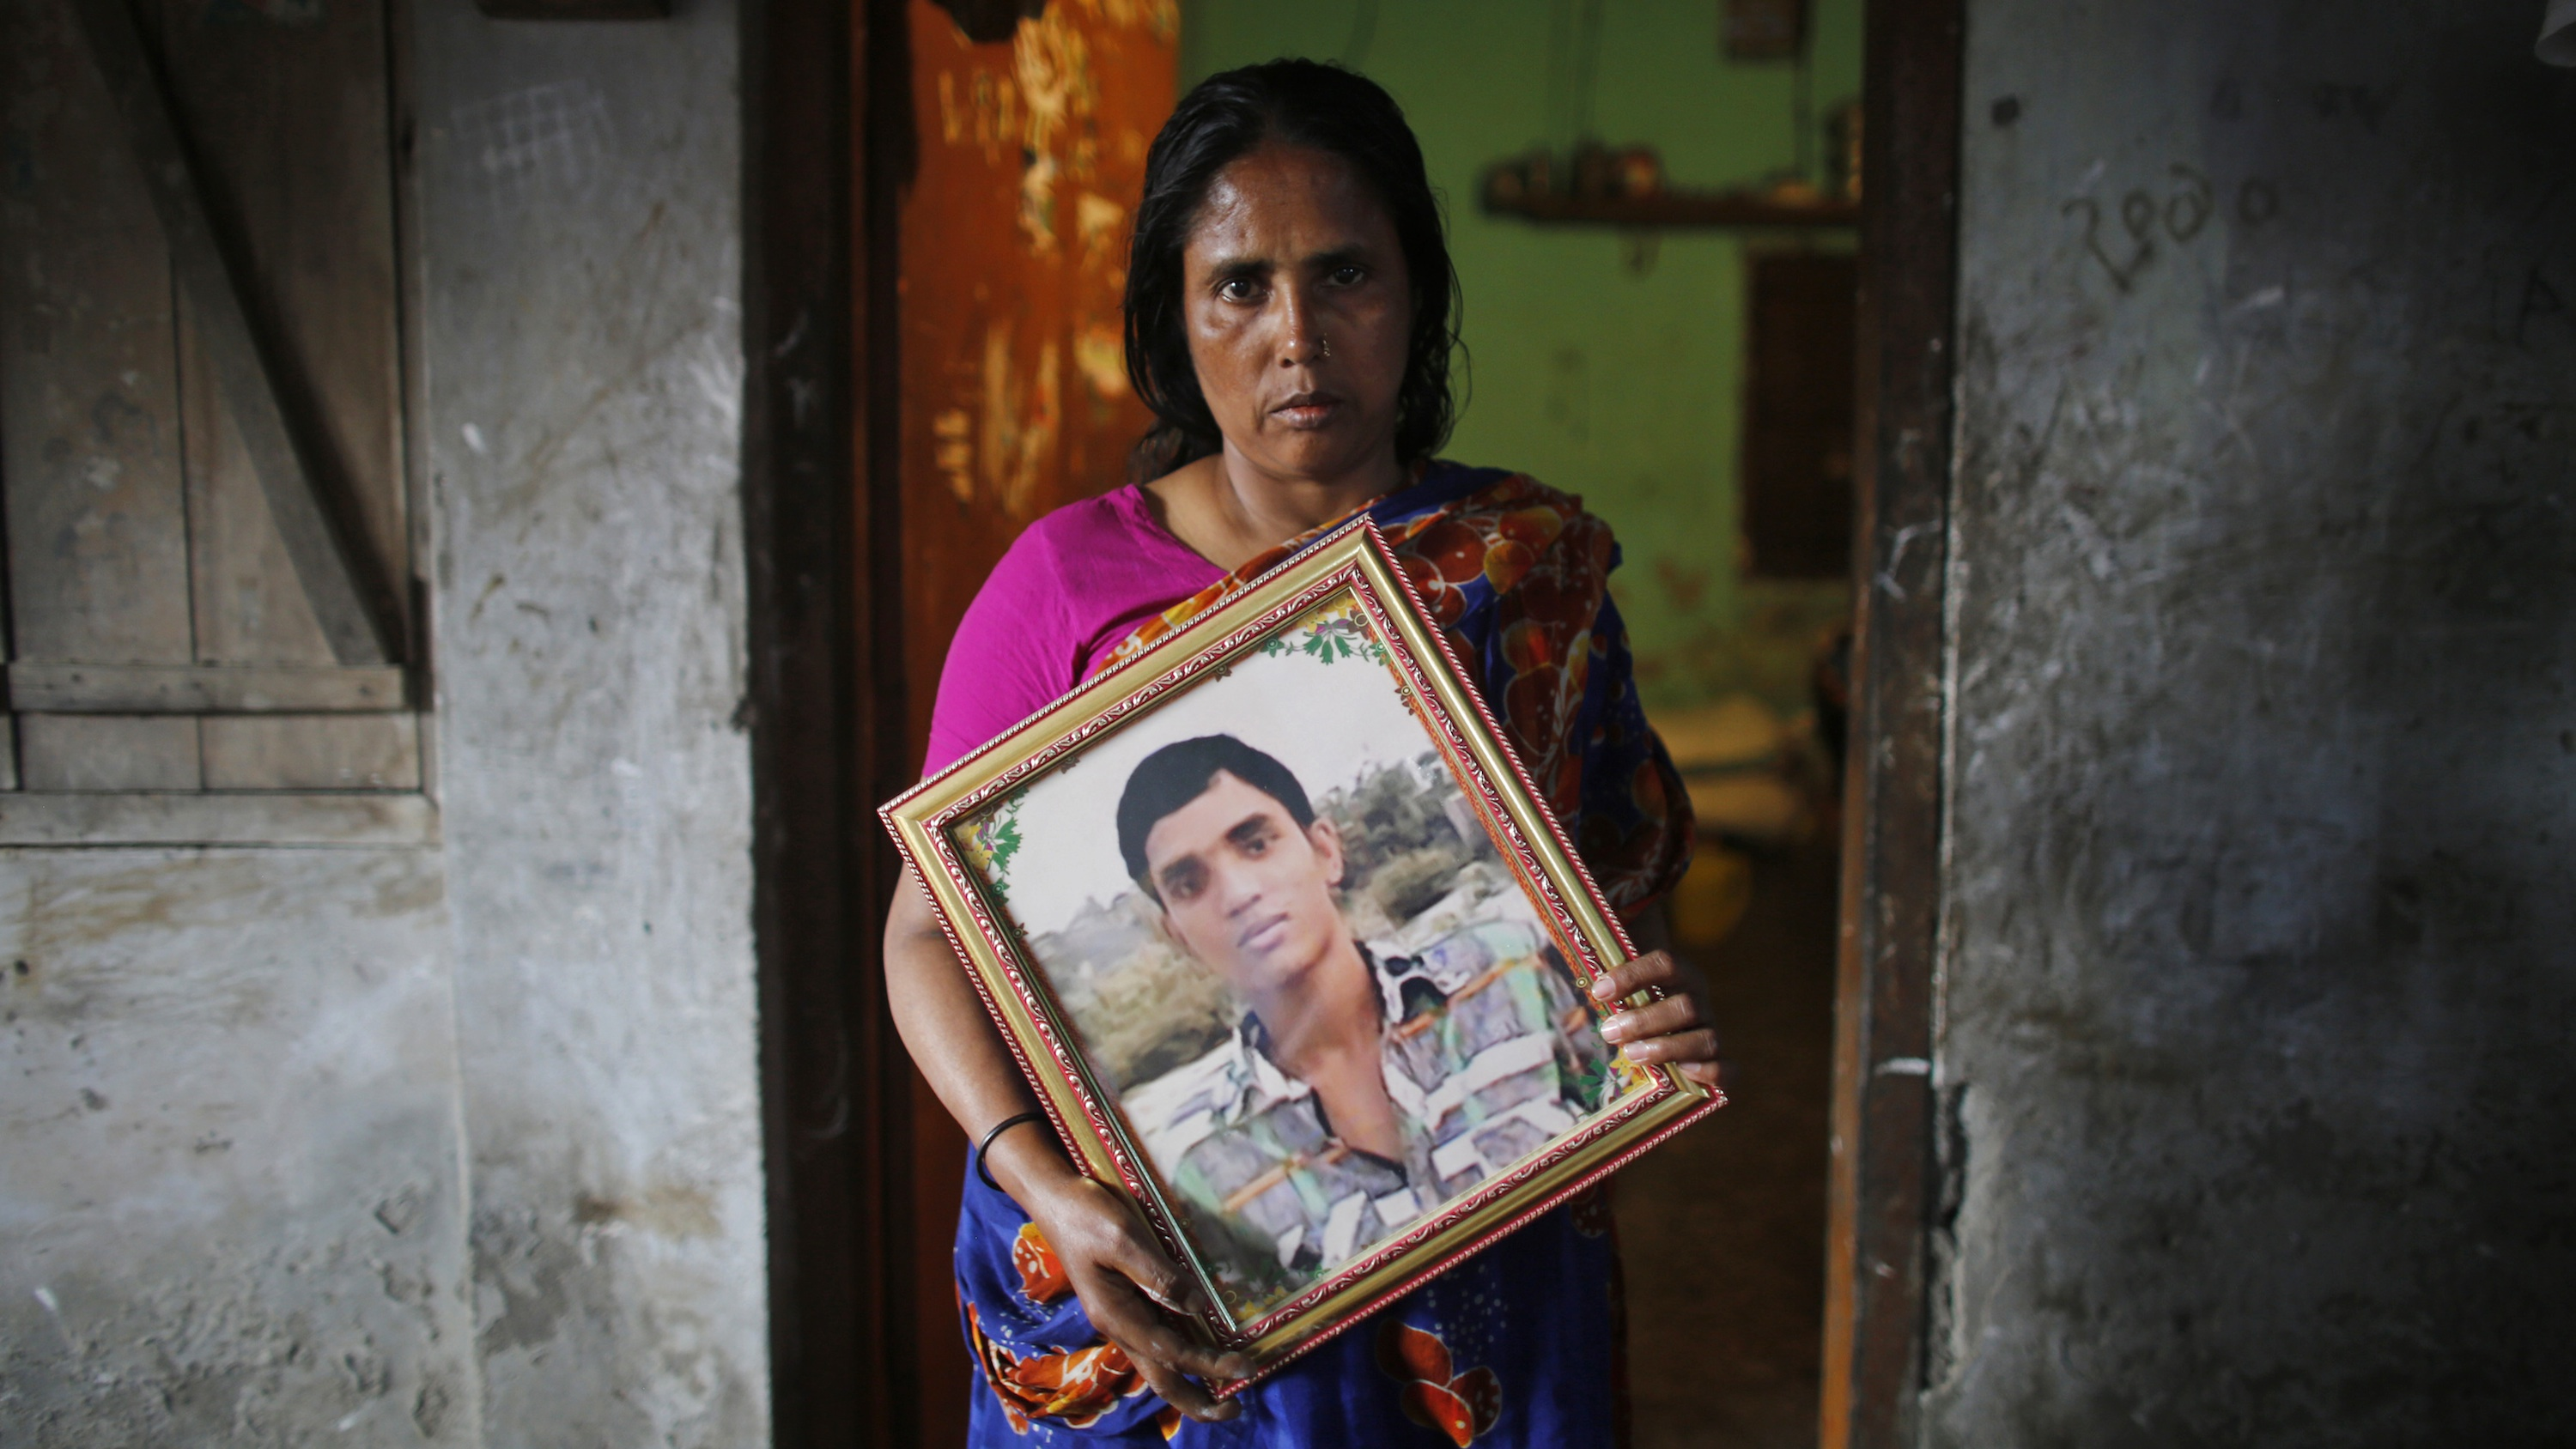 Fatema holds a picture of her son Nurul Karim, who died when  the Rana Plaza factory collapsed in 2013.